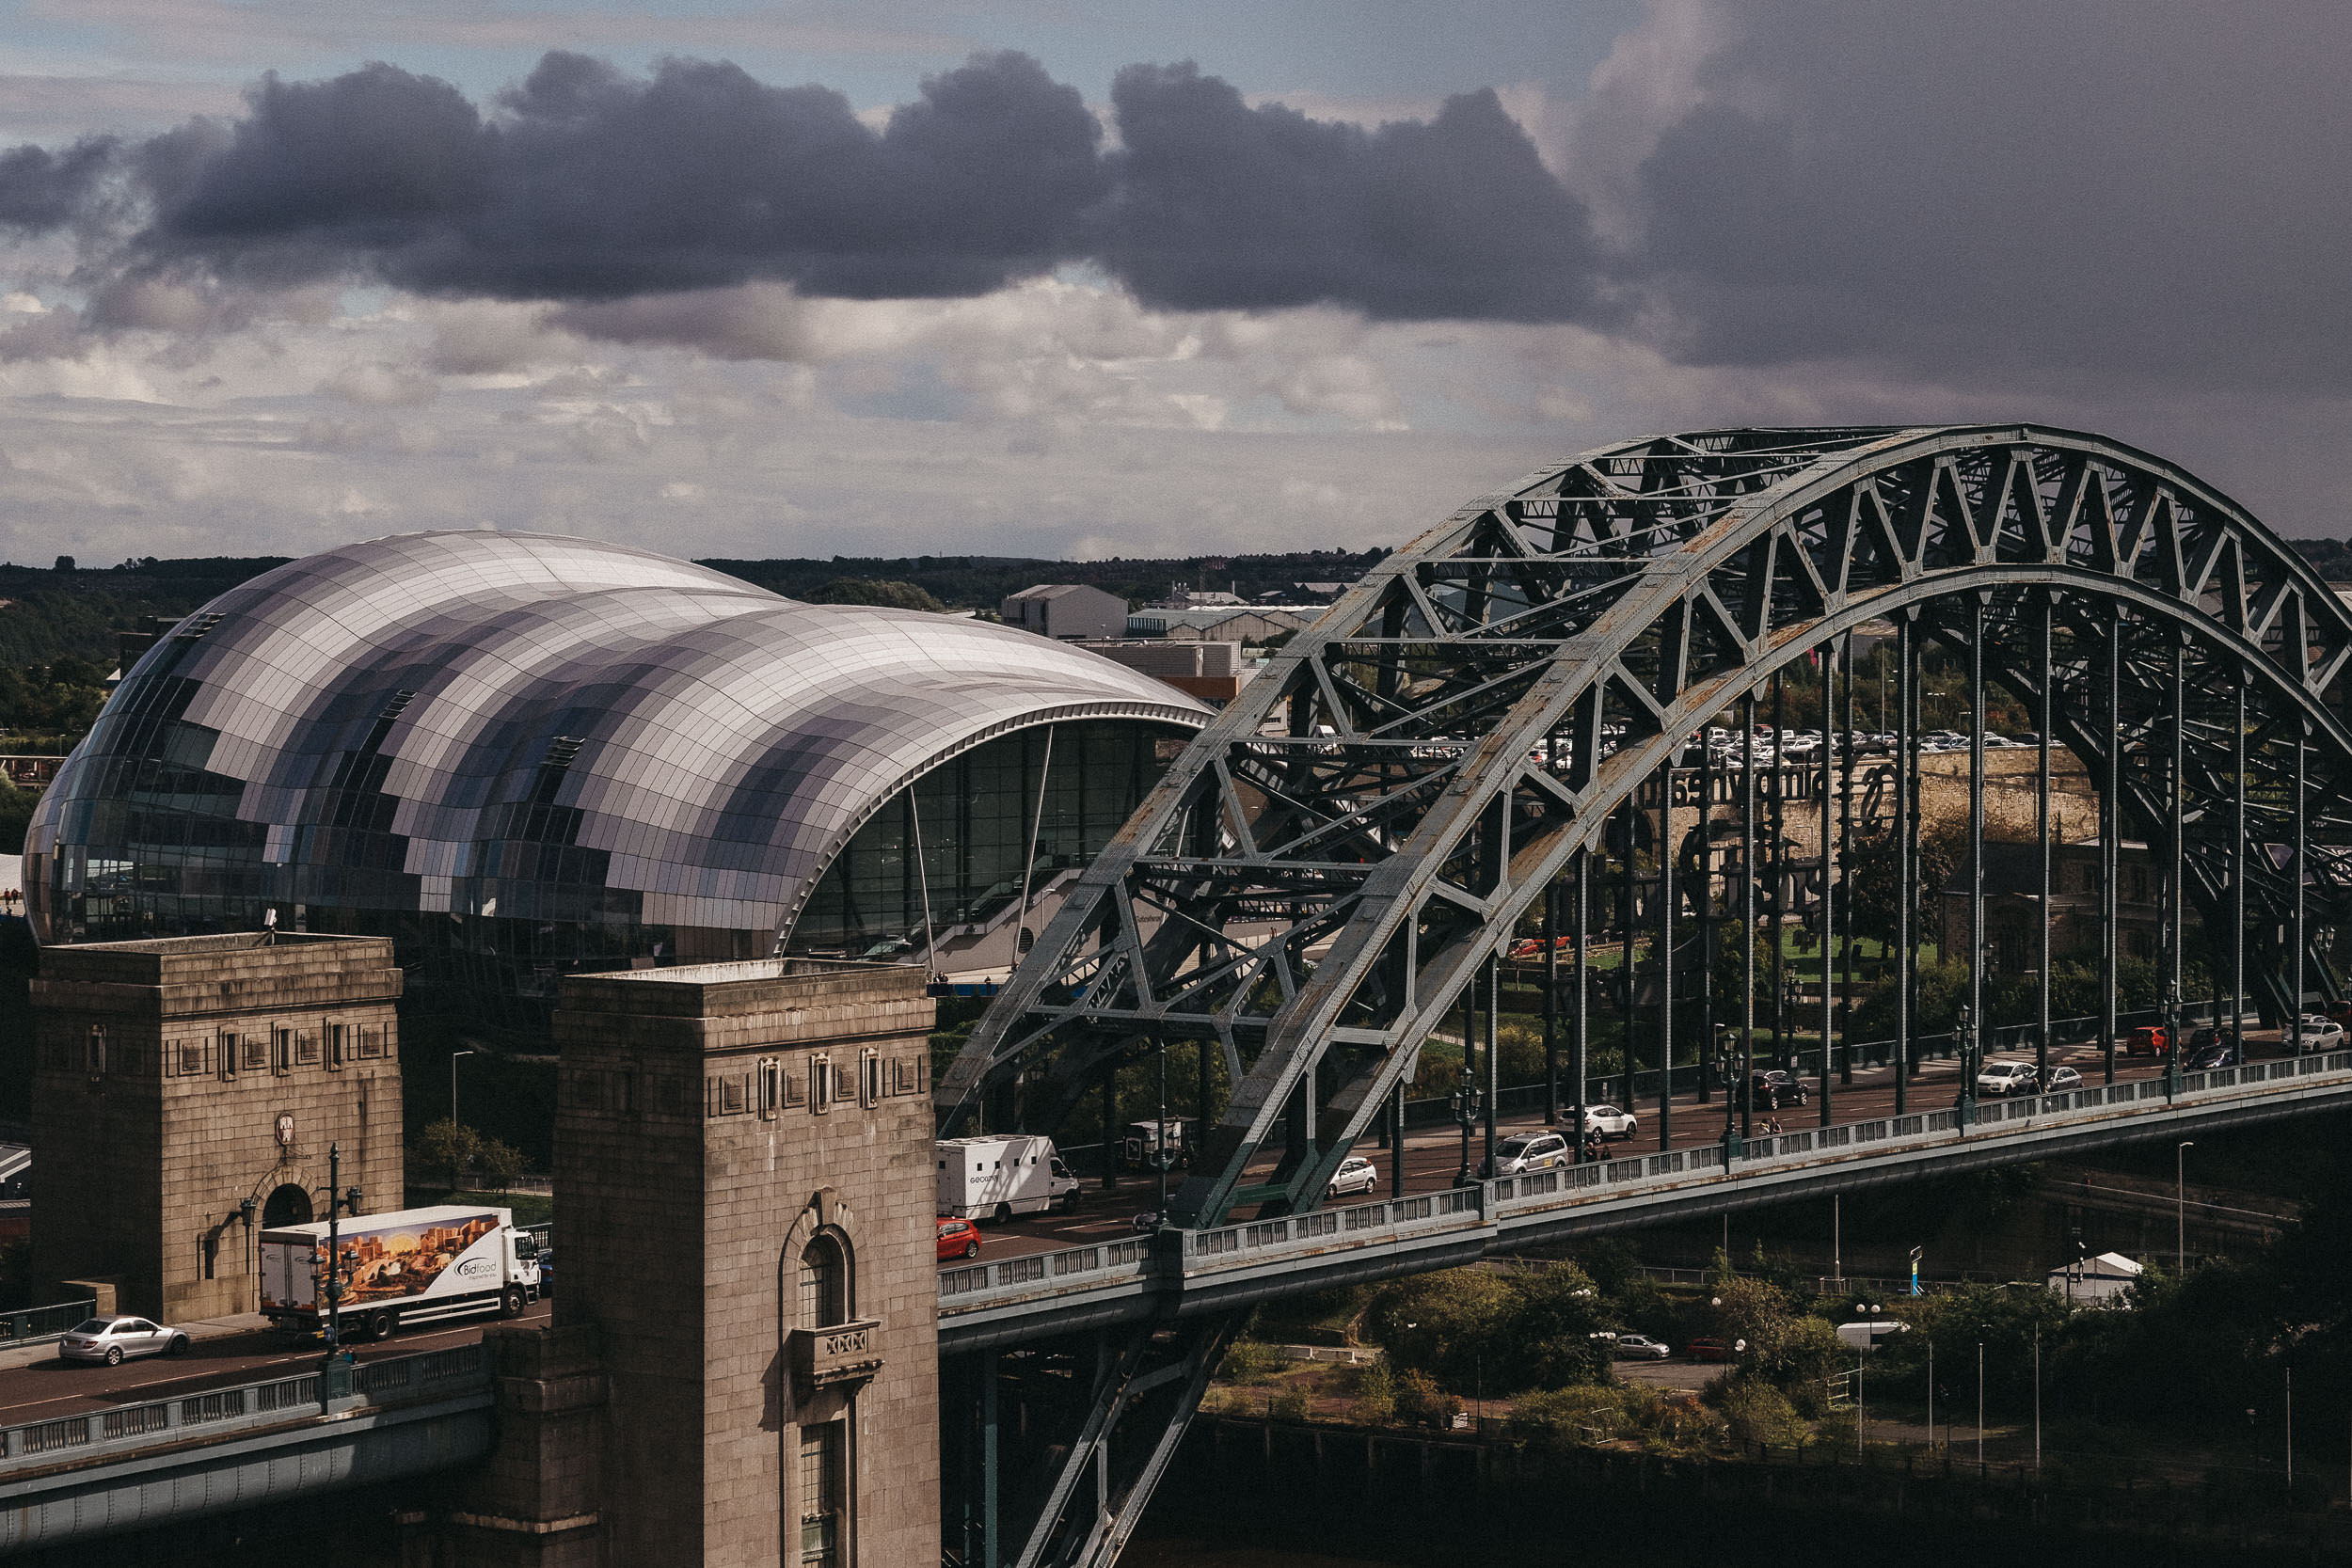 View of the Tyne Bridge and Sage from the roof of the Vermont Hotel